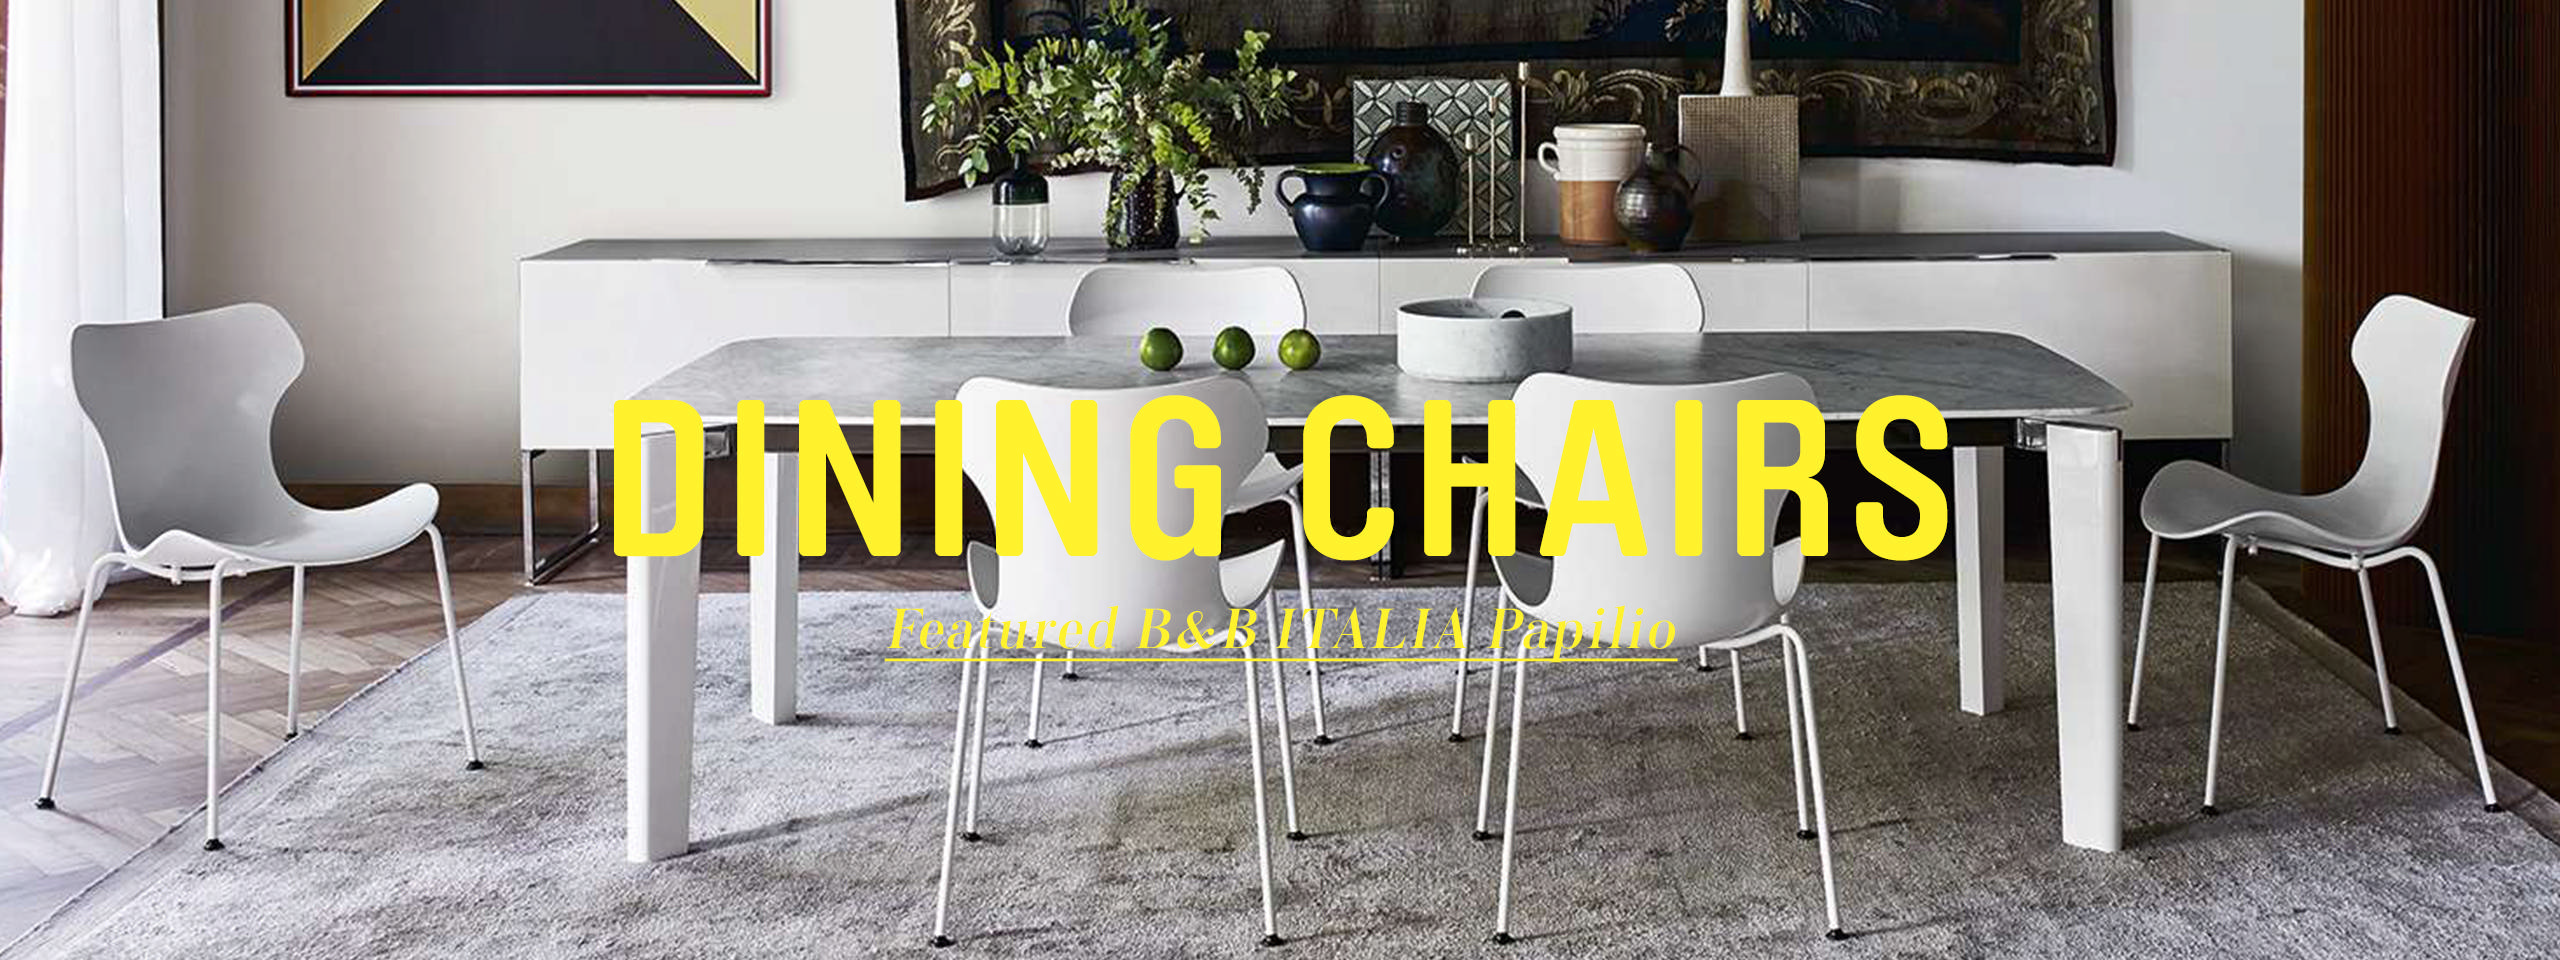 Dining Room Furniture Designer Chairs Space Furniture Jpg 2560x960 Metropolitan  Dining Room Furniture Dimensions